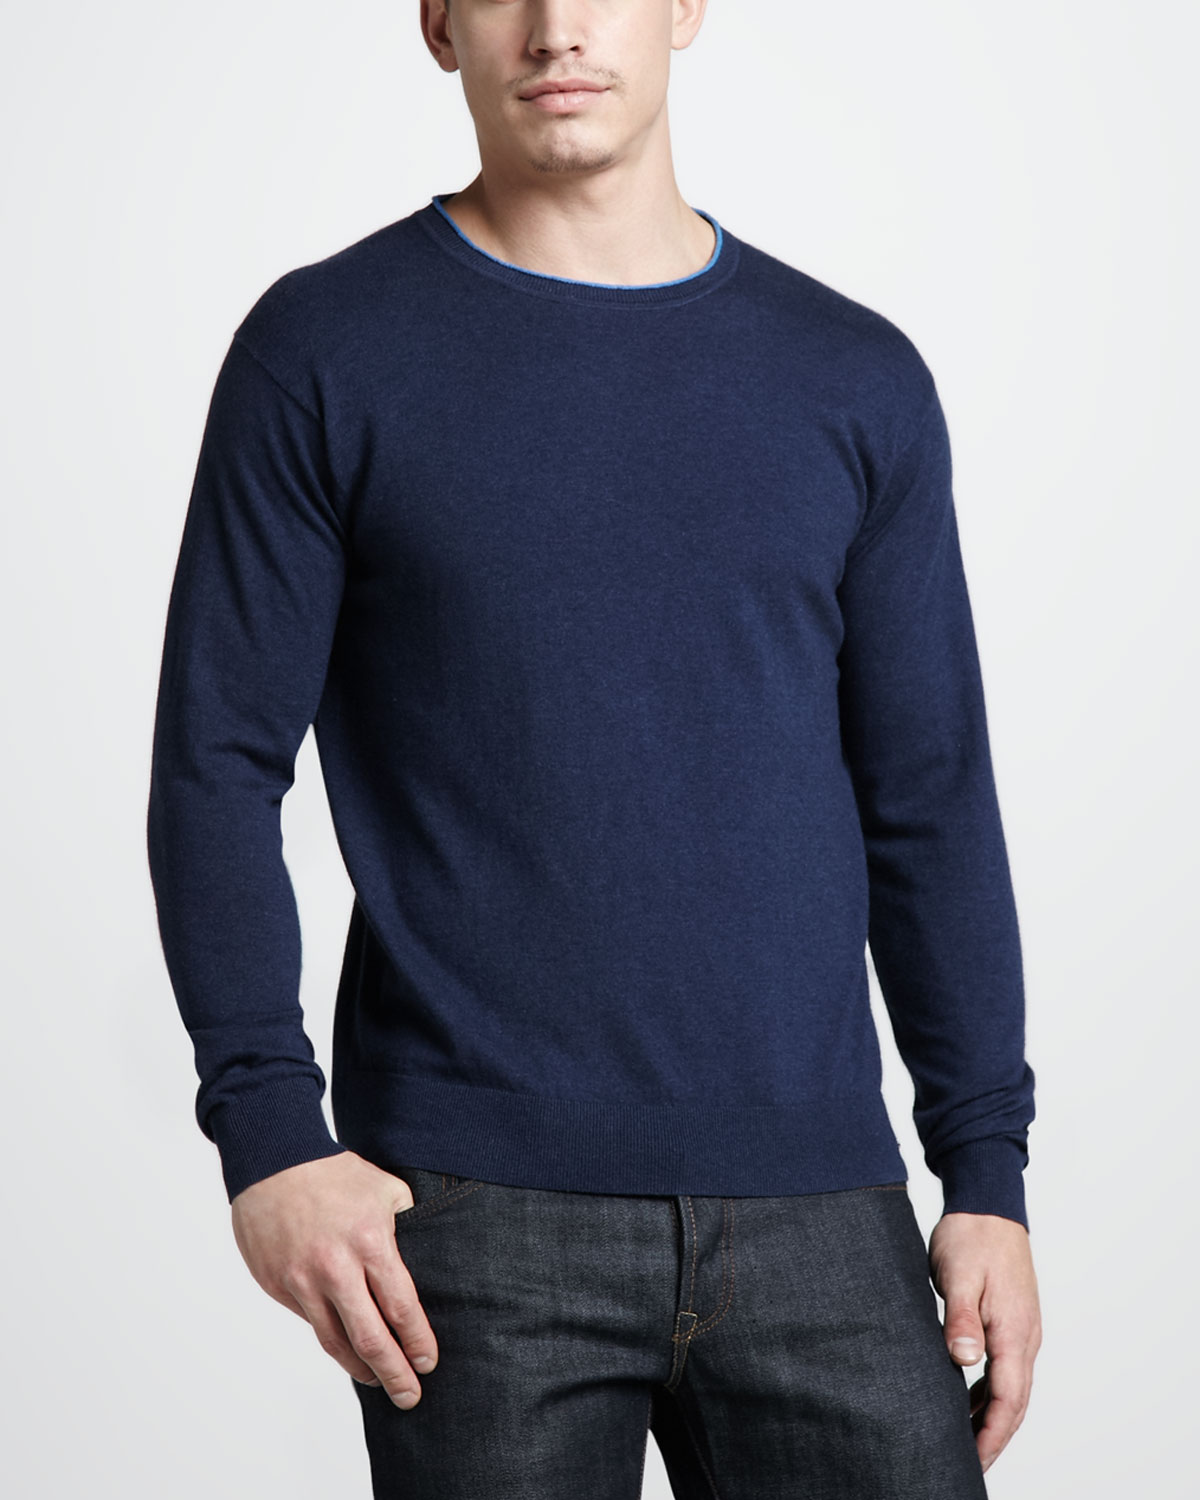 Zegna sport Cottoncashmere Crewneck Sweater Navy in Blue for Men ...